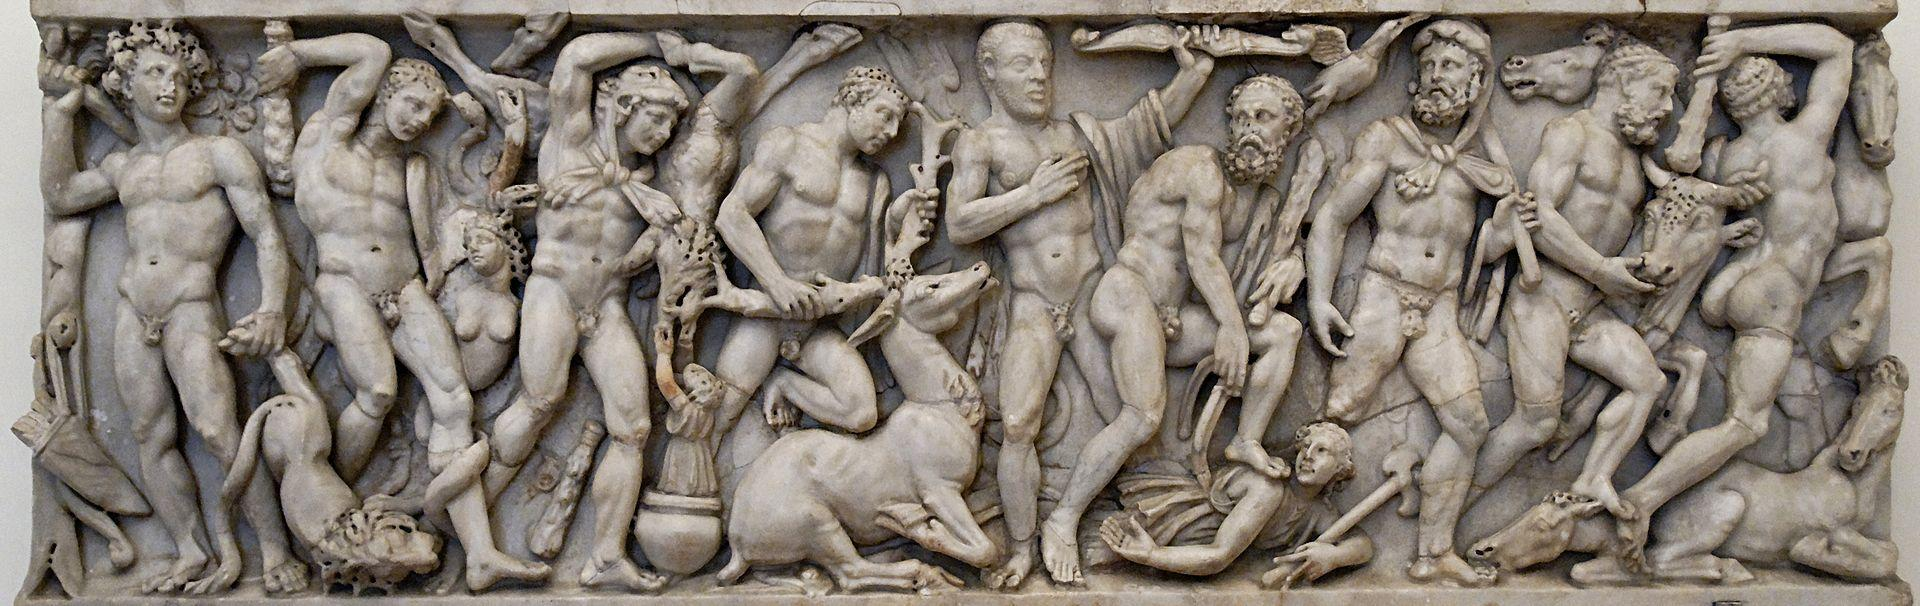 terrapapers.com_The Twelve labors of Hercules Sebald Beham (12)